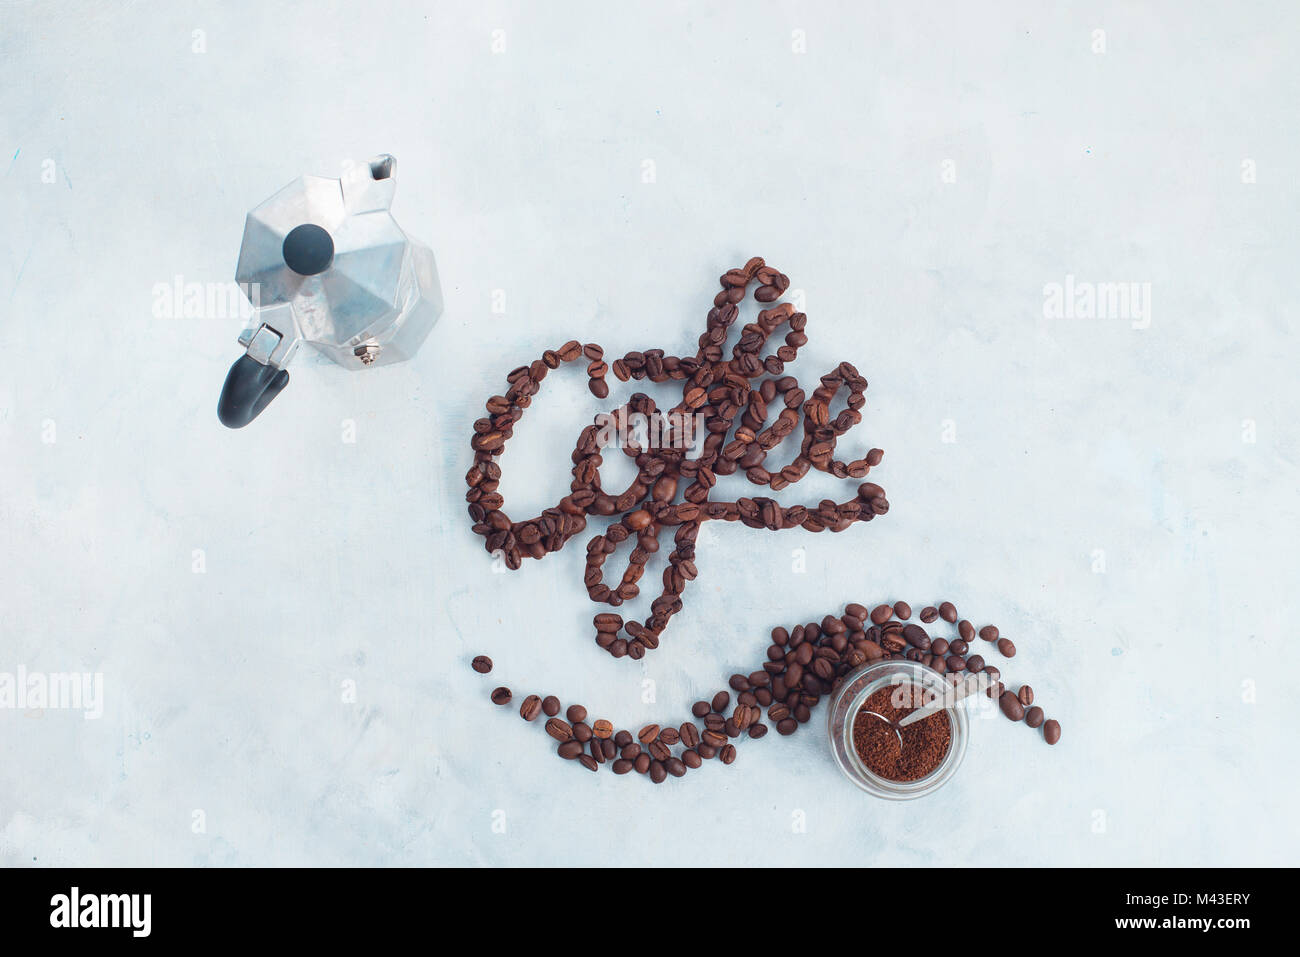 Word Coffee made with coffee beans. High key drink photography with Moka pot and food lettering. Creative top view - Stock Image